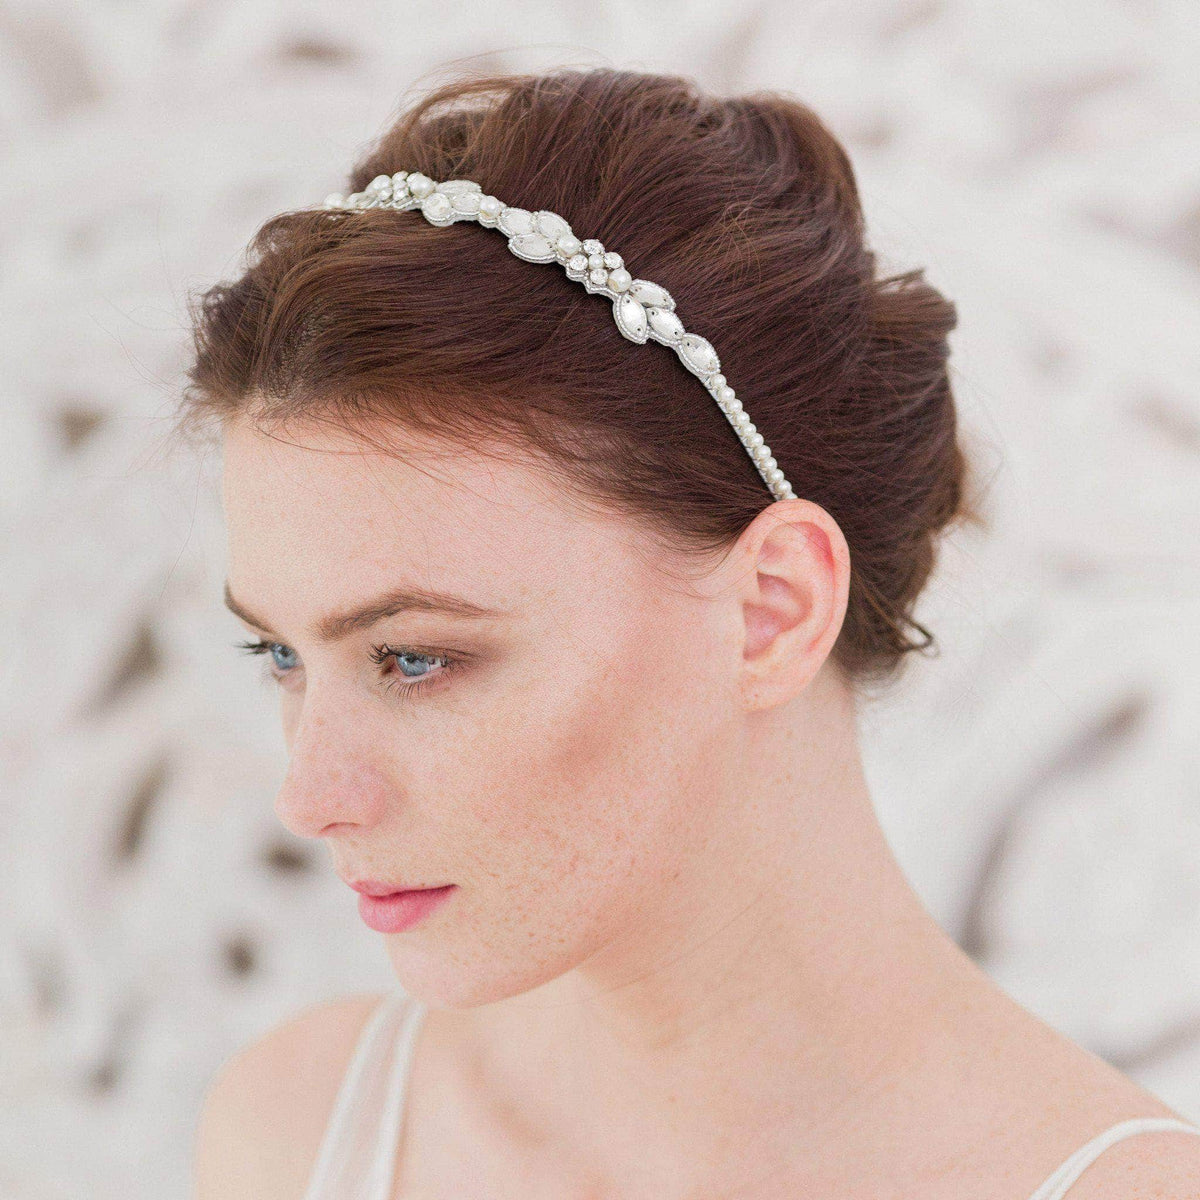 Wedding Headband Silver / Silver sparkle (as in images) Pearl and crystal silver wedding headband 'Evelyn'